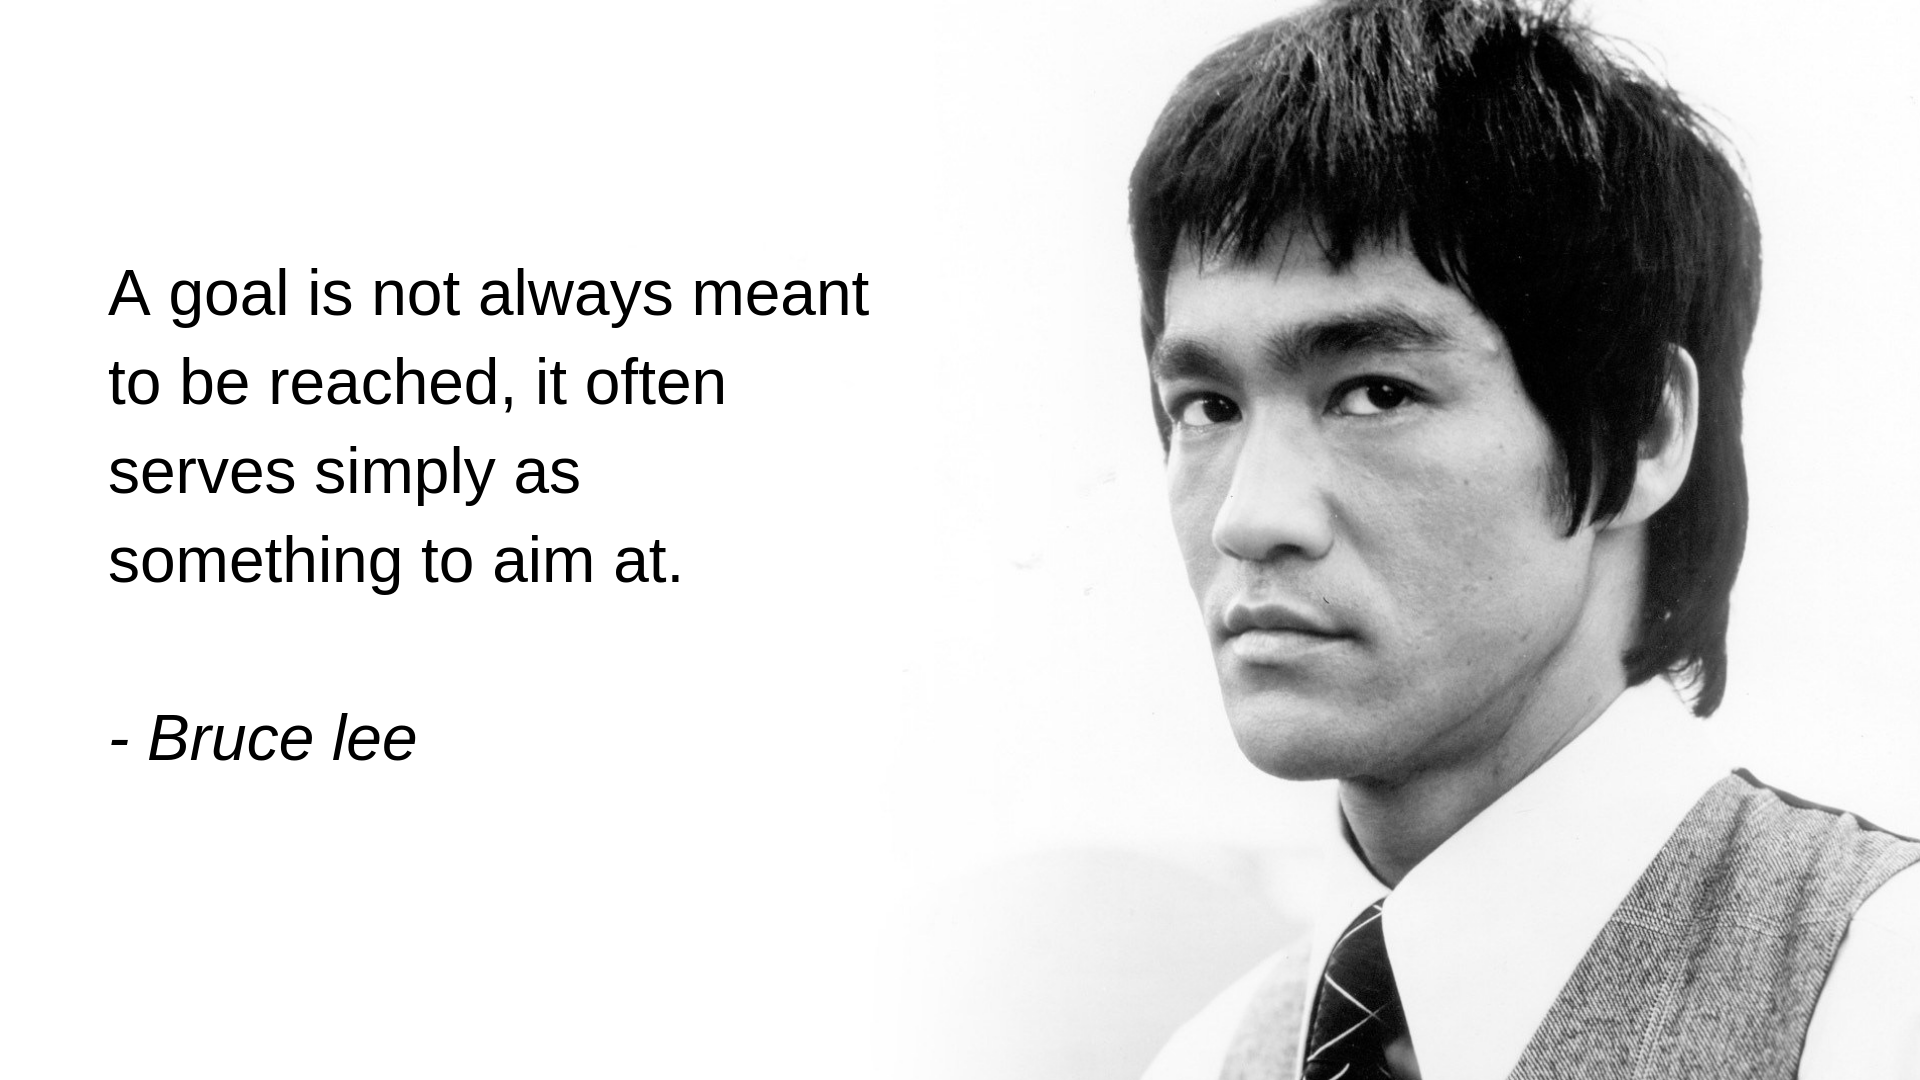 [Image] A goal is not always meant to be reached